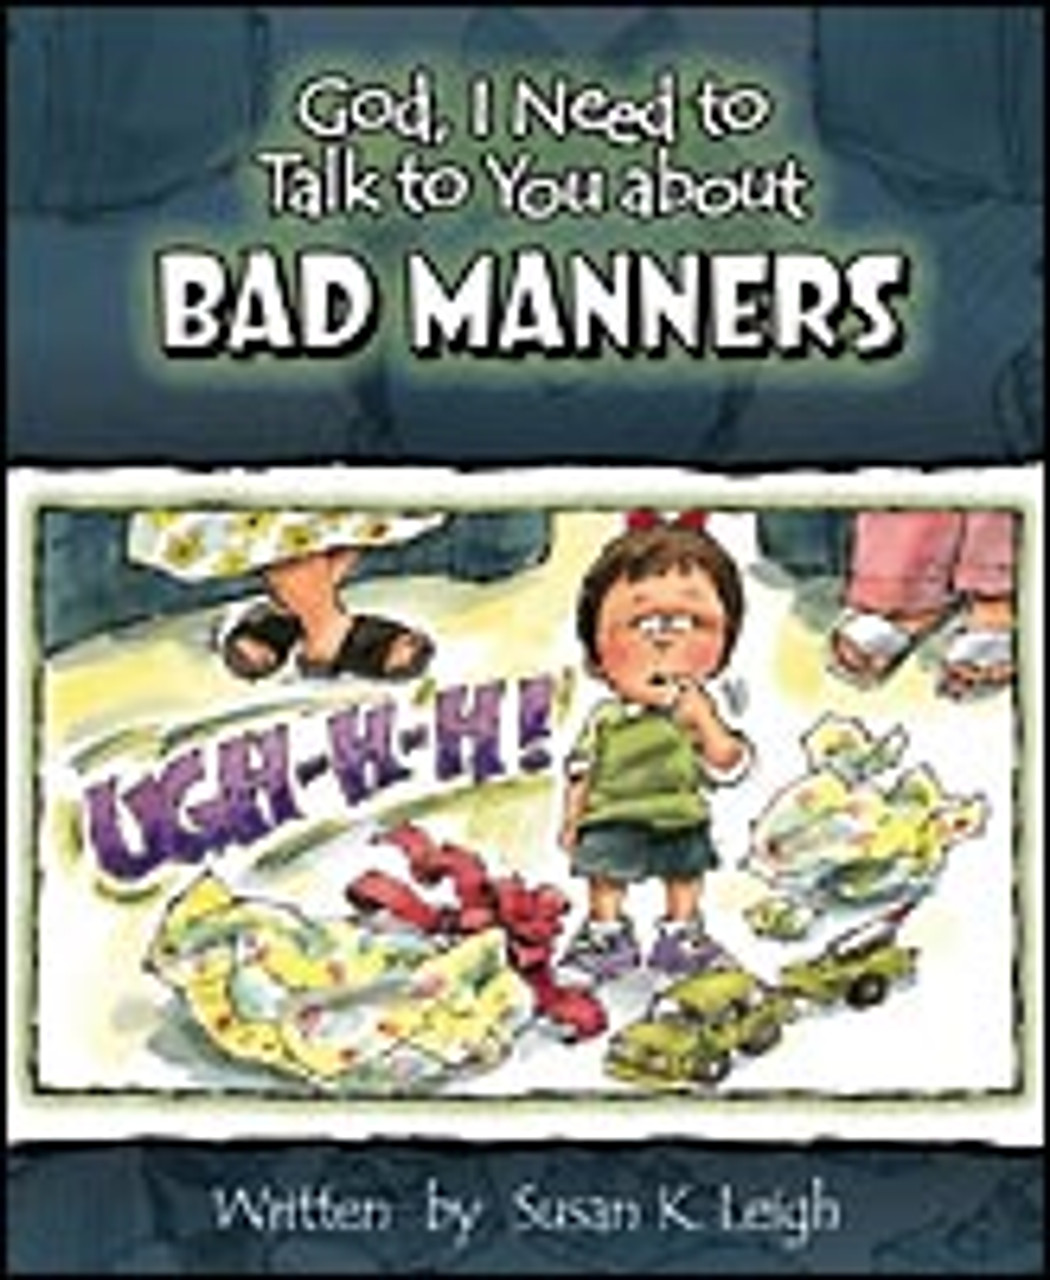 God I need to talk to you about bad manners